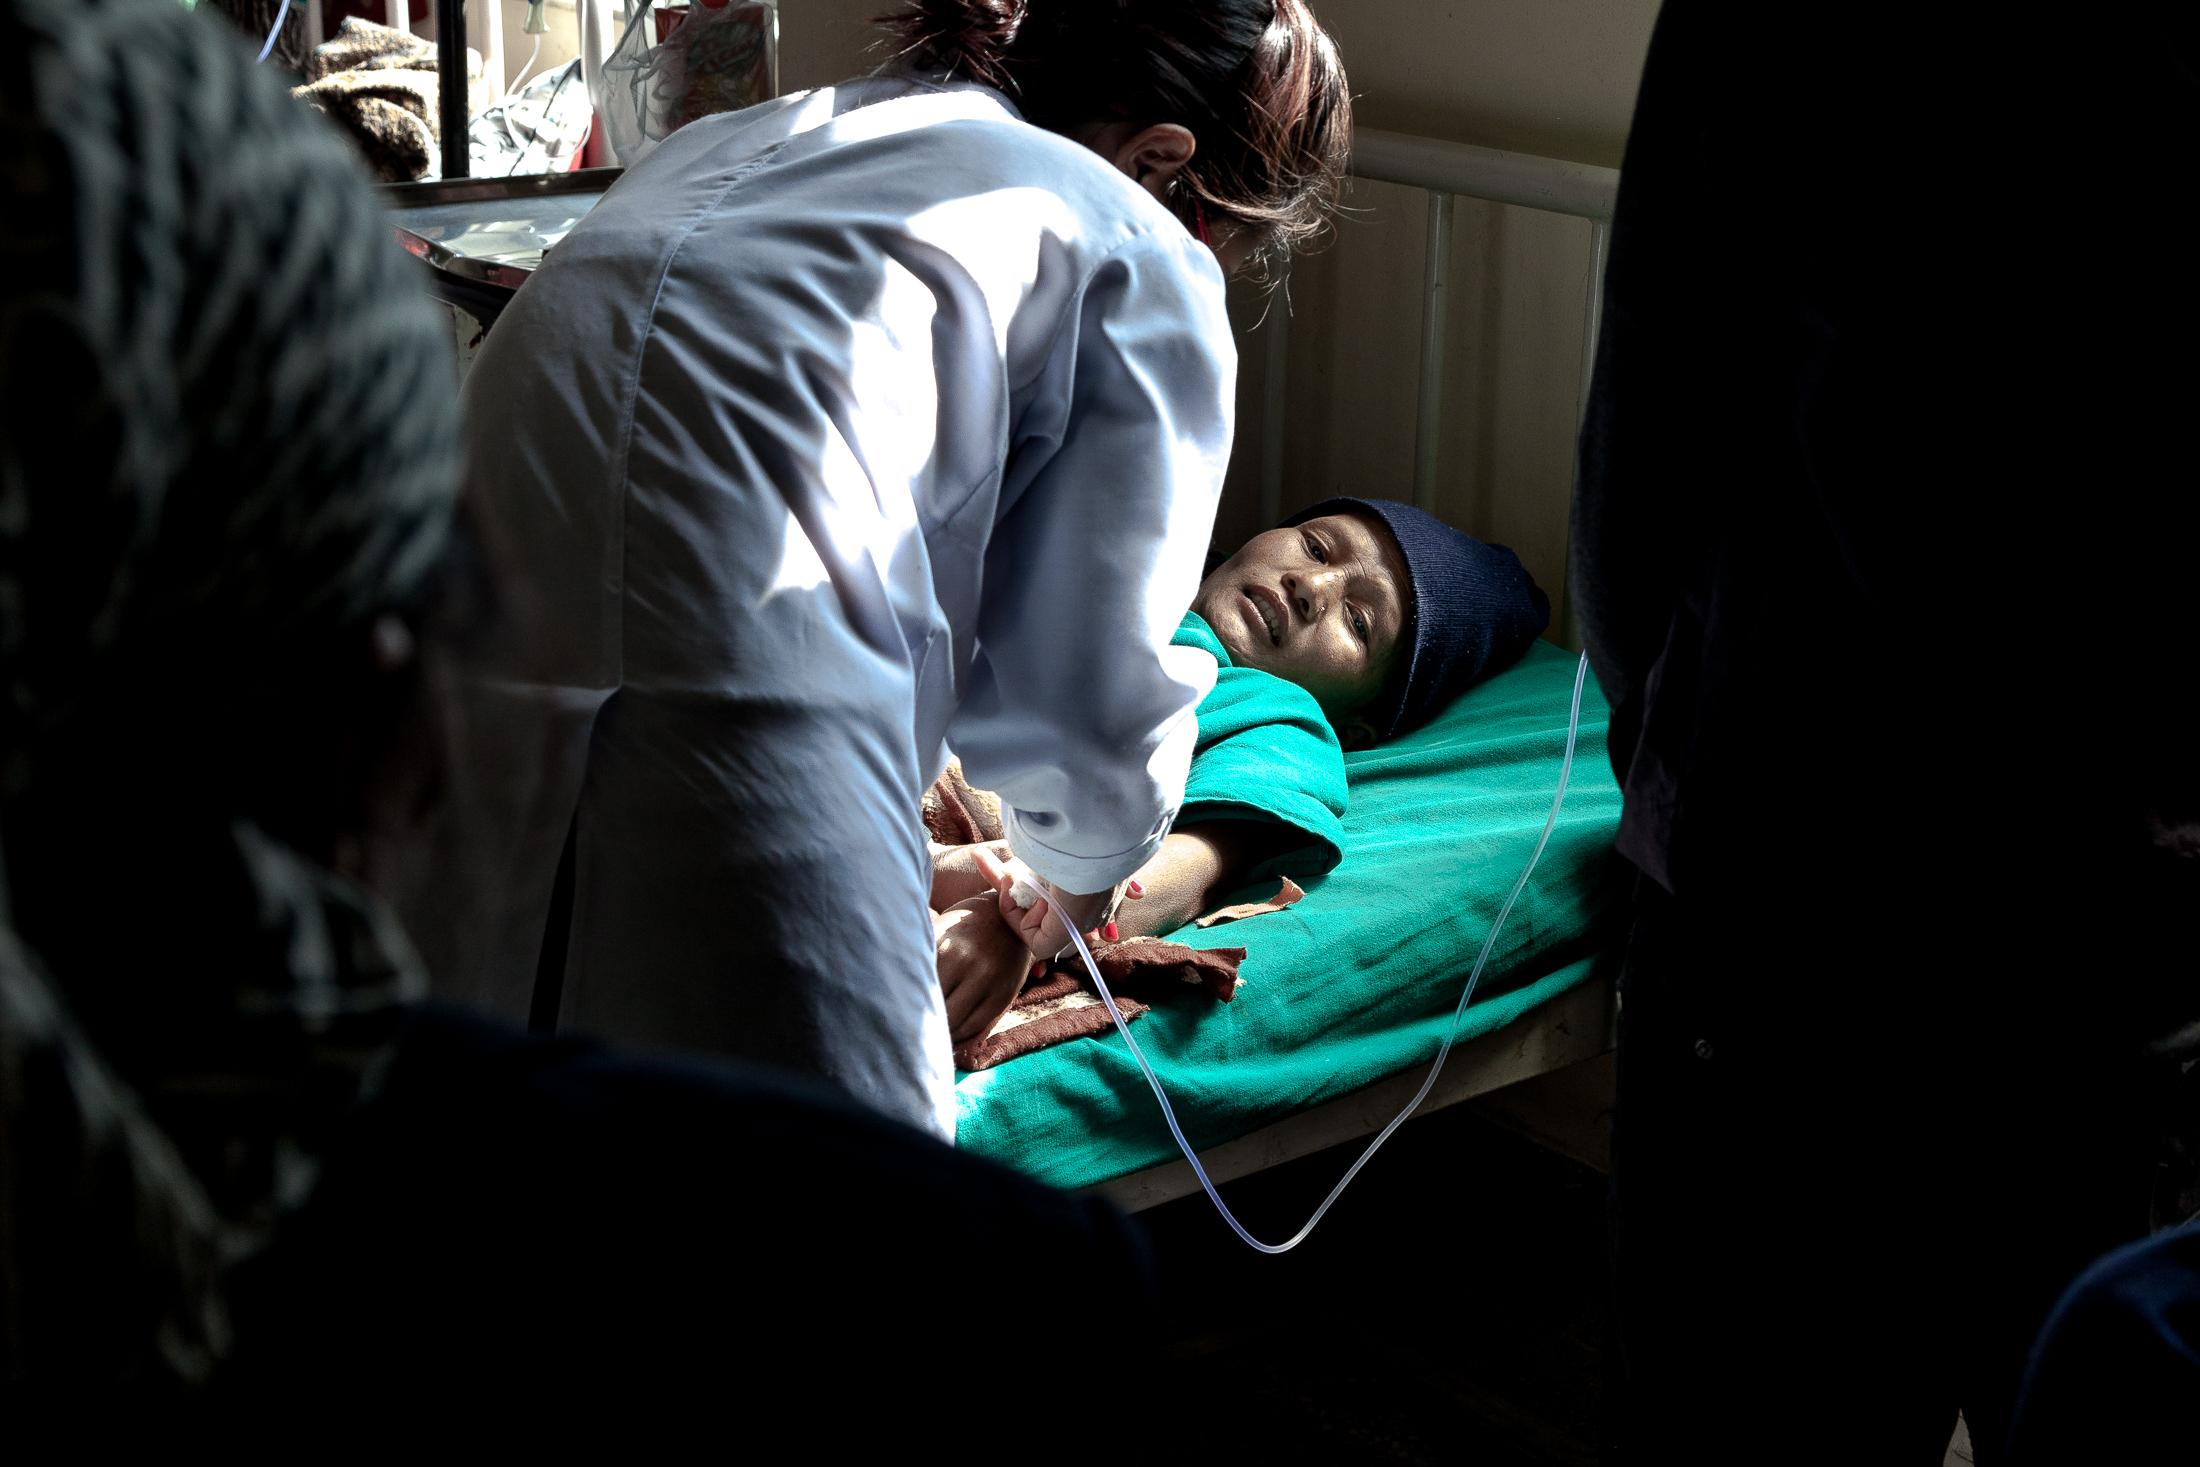 BHAKTAPUR, NEPAL- FEBRUARY 02: A patient affected by cervical cancer lays on a hospital bed while receiving chemotherapy at the Bhaktapur Cancer Hospital on February 02, 2015 in Bhaktapur, Nepal. More than 1,100 women die from cervical cancer in Nepal each year, making it the most common cancer among women in the country. Despite being easily preventable, the lack of awareness around screening has made this form of cancer one of the most prevalent in the developing world. Photo: © Omar Havana